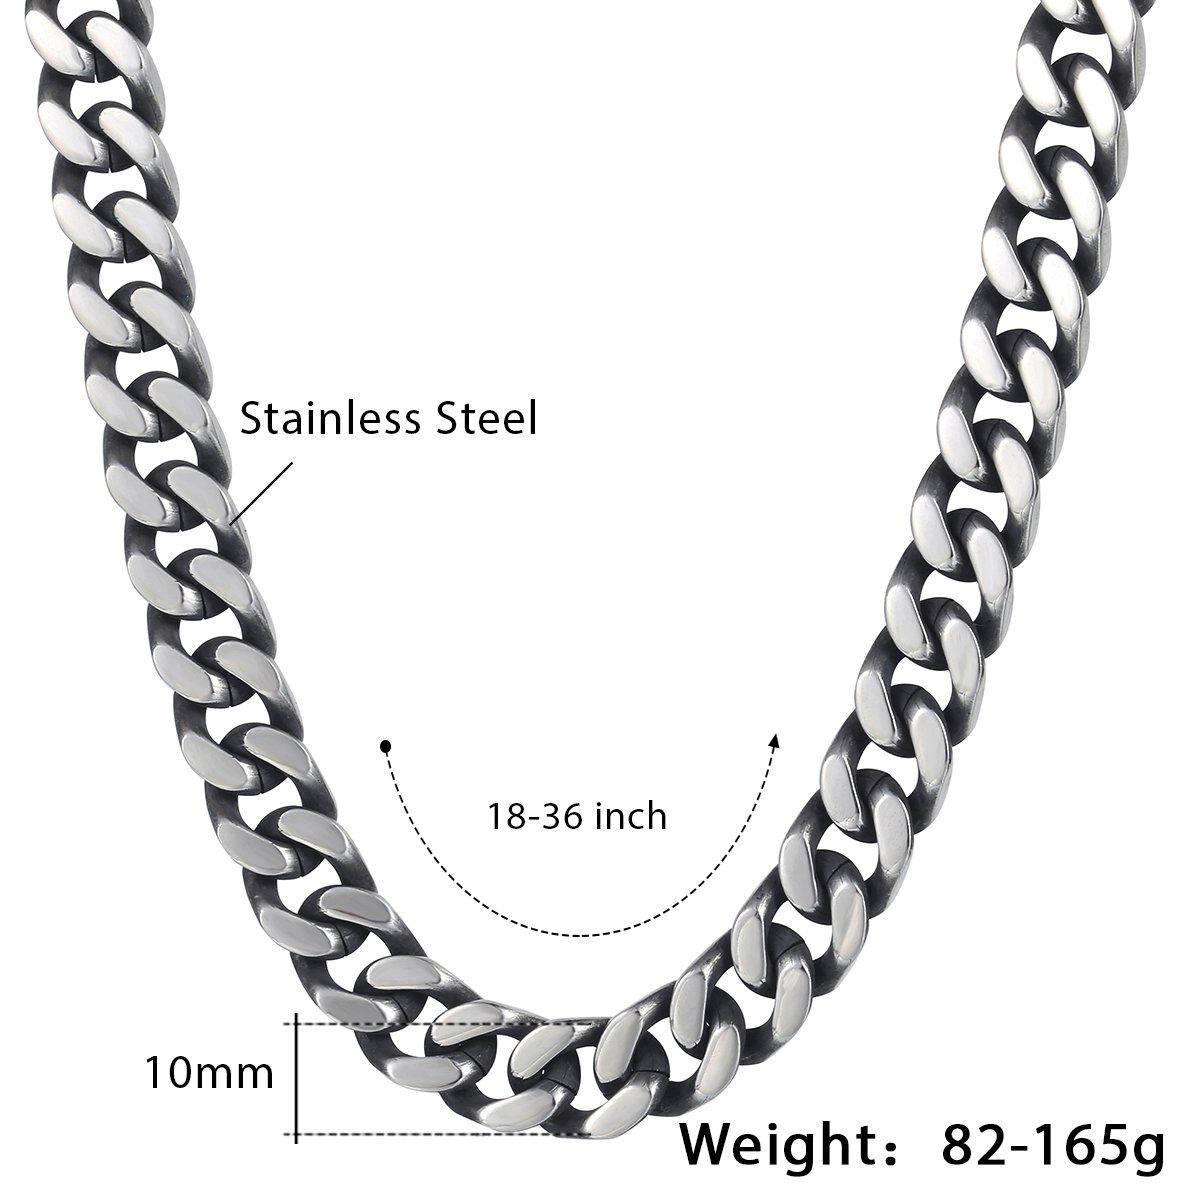 HAMANY Stainless Steel Necklace Link Chain Silver Tone with a Velvet Bag